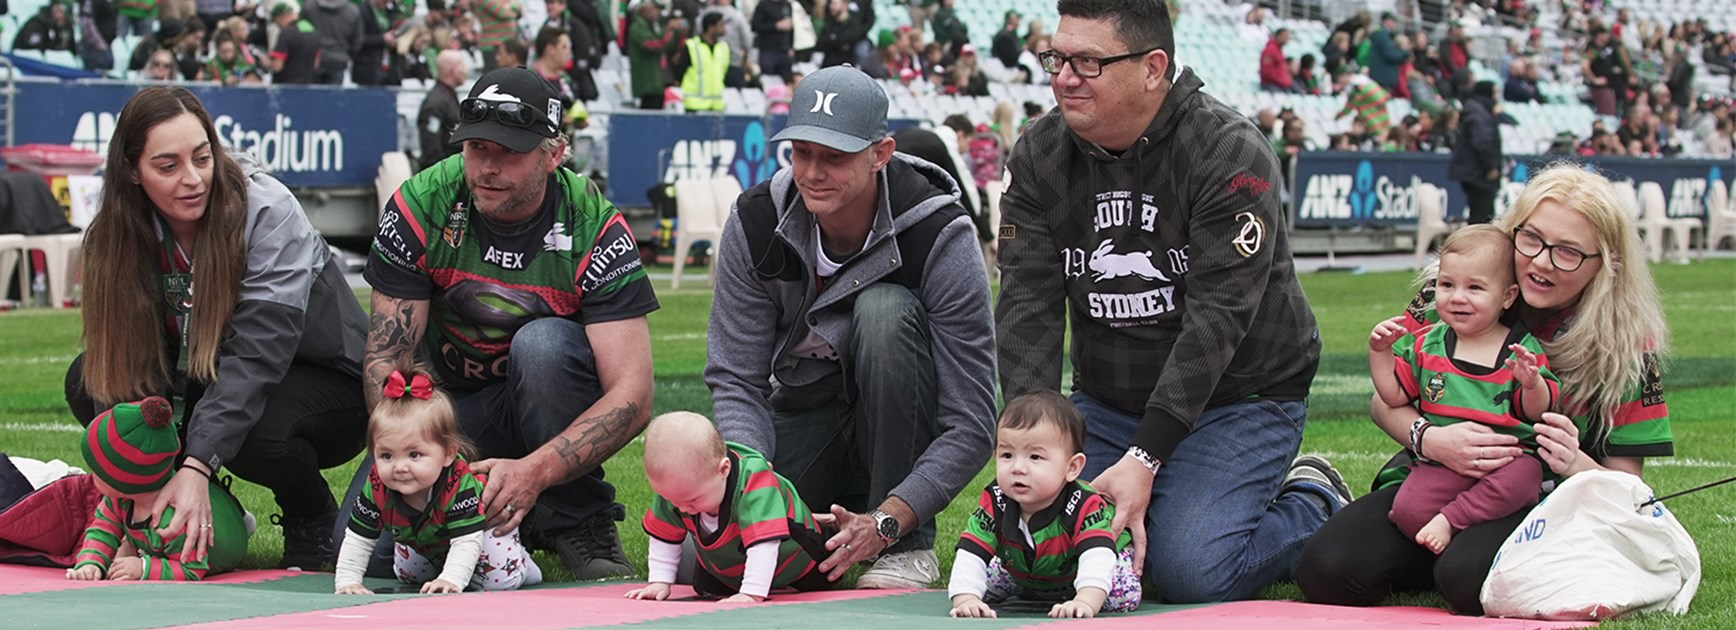 Rabbitohs' show stopping Baby Race a hit